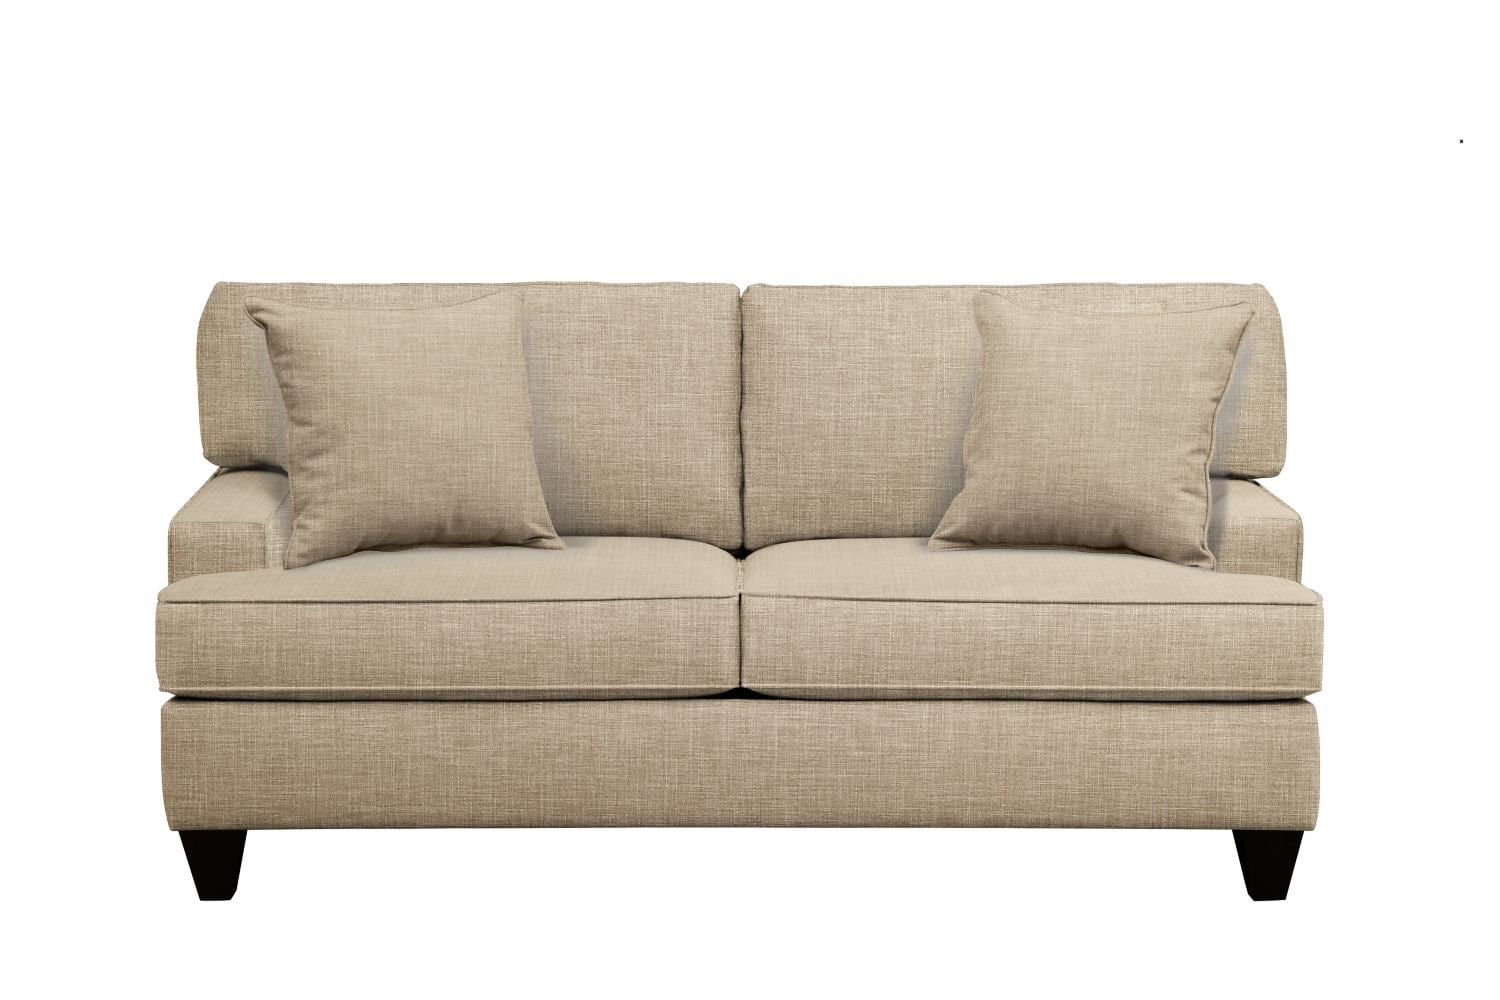 "Conner Track Arm Sofa 75"" Milford II Toast w/ Milford II Toast  Pillow"